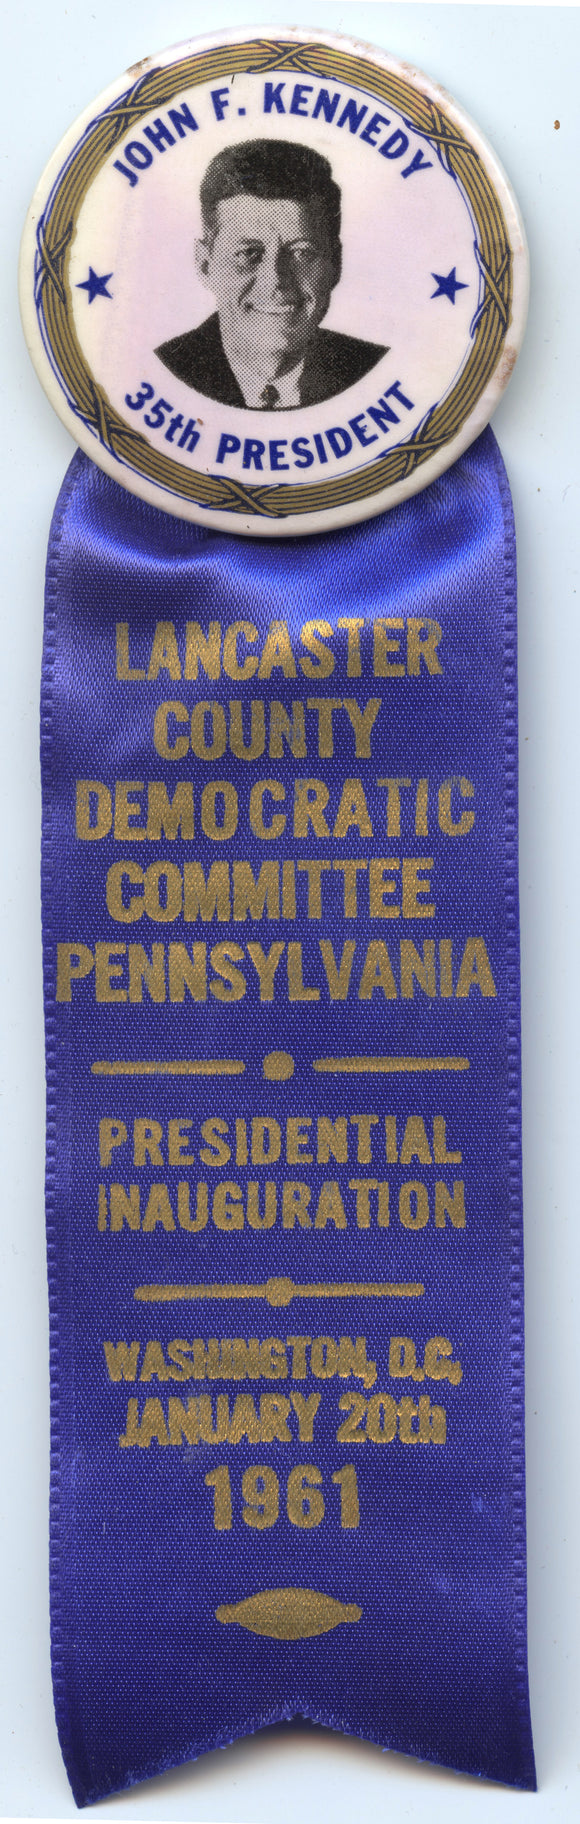 JOHN F. KENNEDY / LANCASTER COUNTY  PRESIDENTIAL INAUGURATION 1961